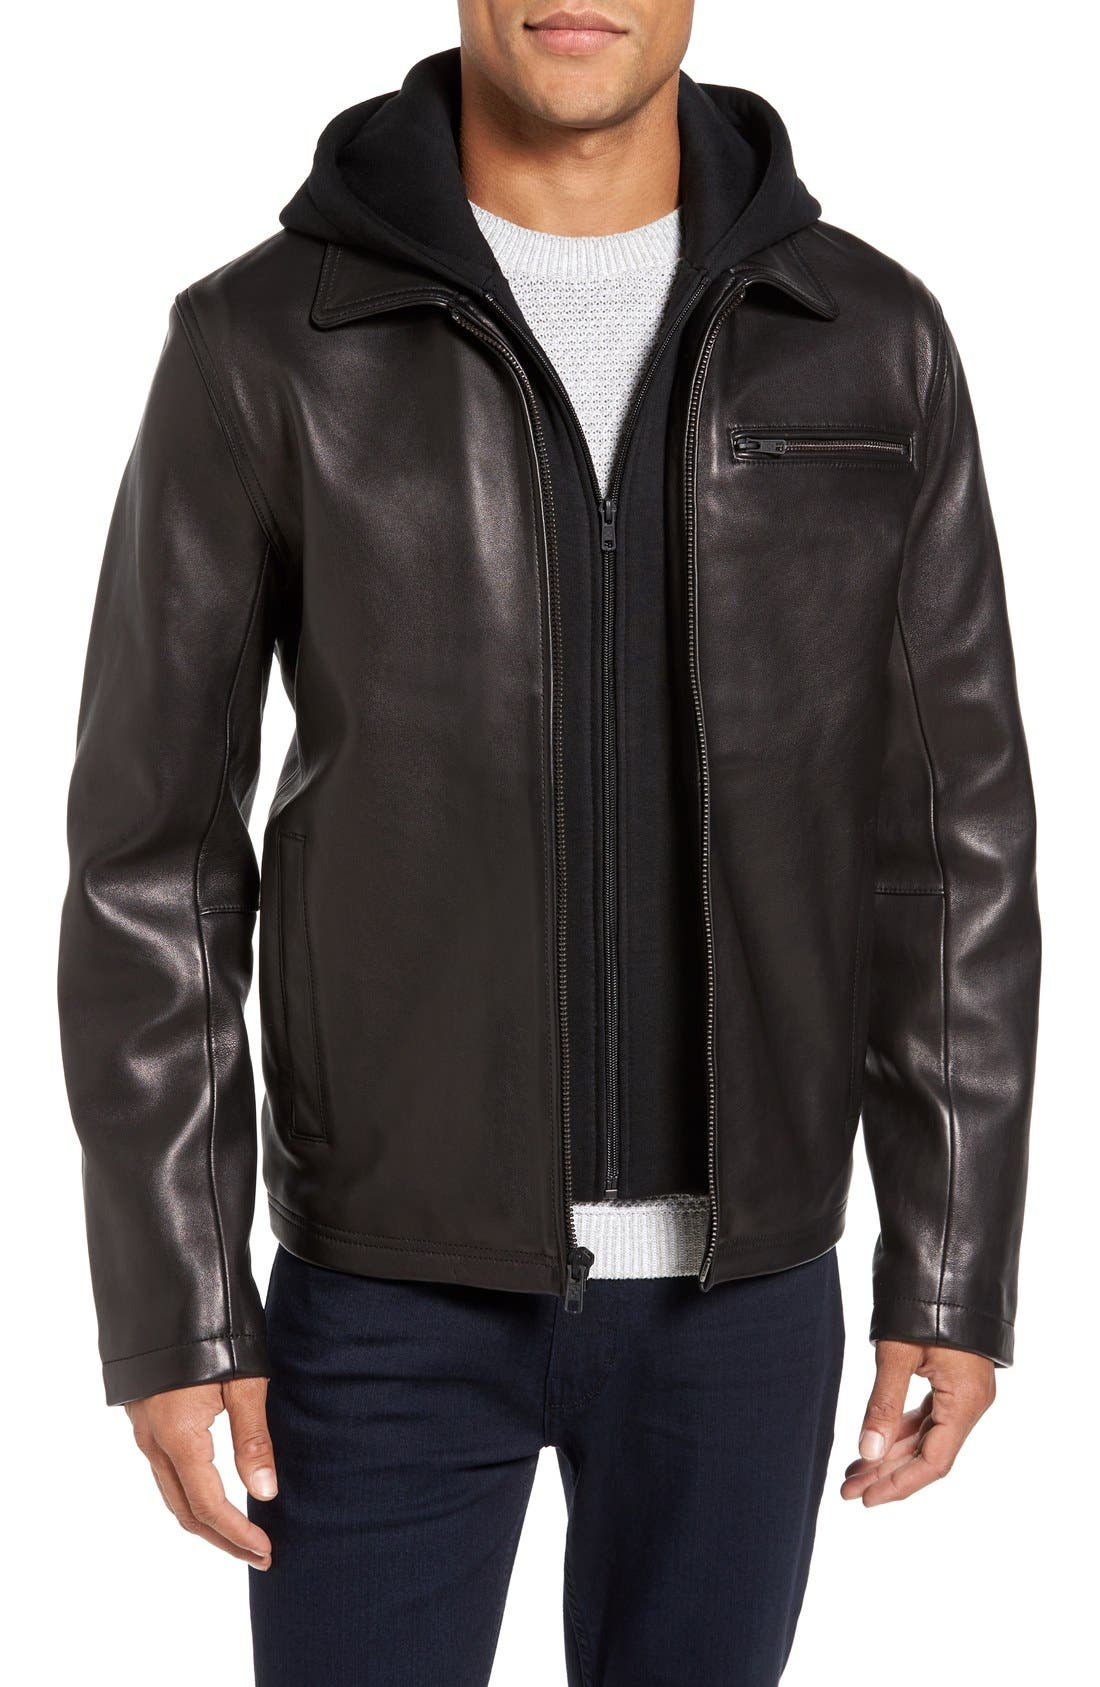 Leather Jacket with Removable Hooded Bib,                         Main,                         color, 001